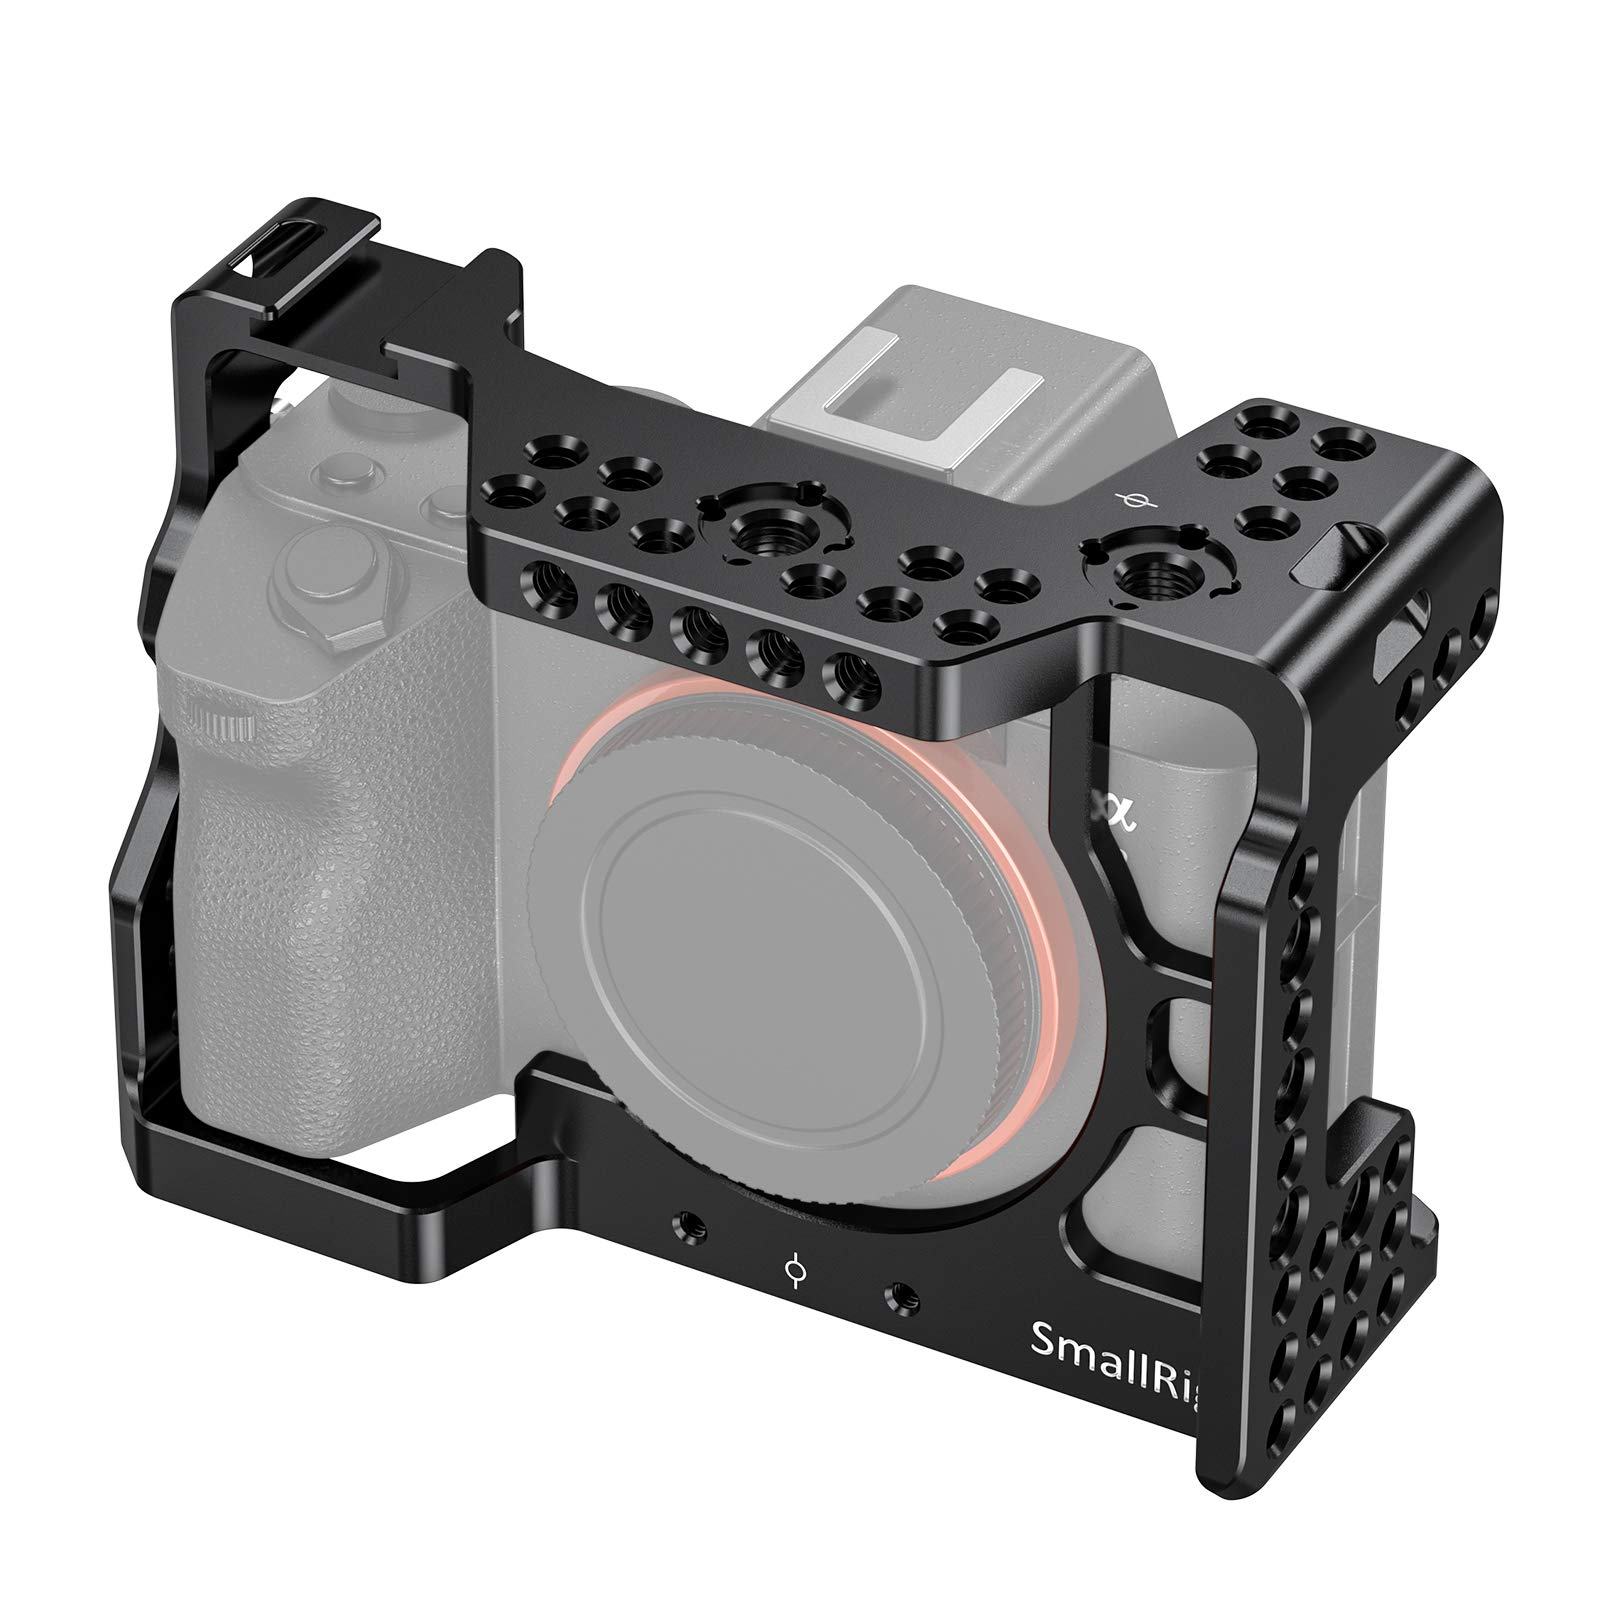 SMALLRIG A7RIII / A7III Camera Cage for Sony A7RIII / A7III Camera (ILCE-7RM3 / A7R Mark III) with Cold Shoe and Locating Holes - 2087 by SMALLRIG